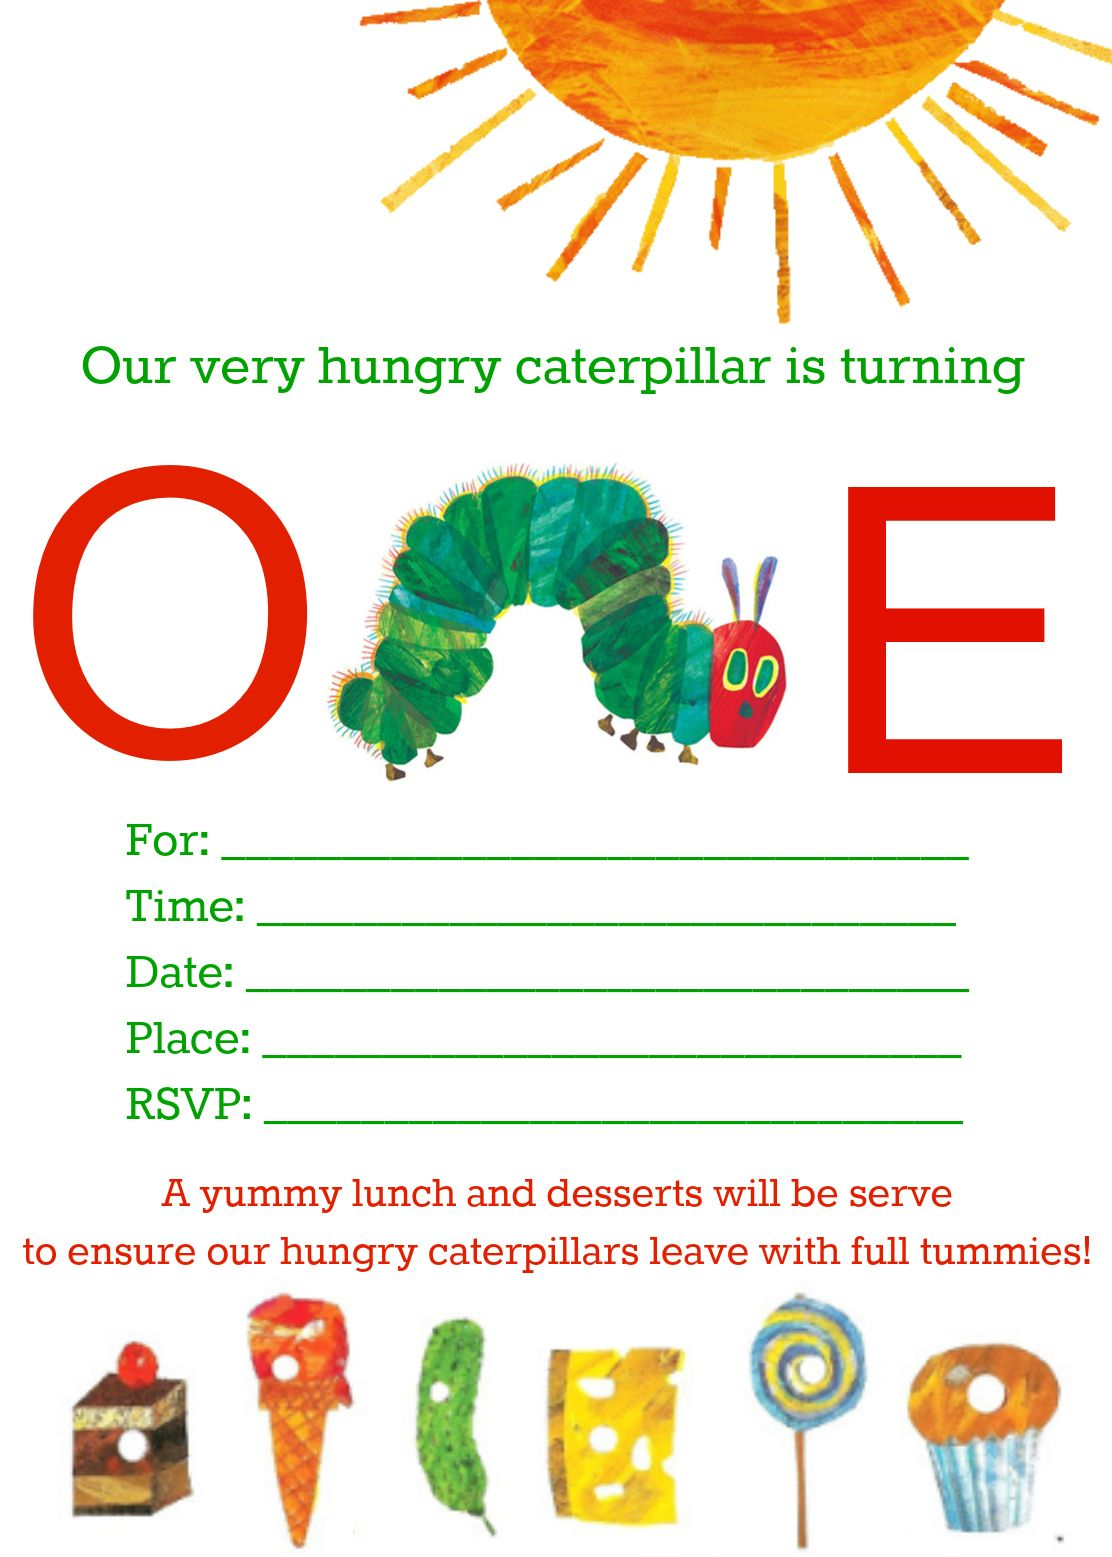 The Very Hungry Caterpillar Birthday | Hungry caterpillar, Birthdays ...